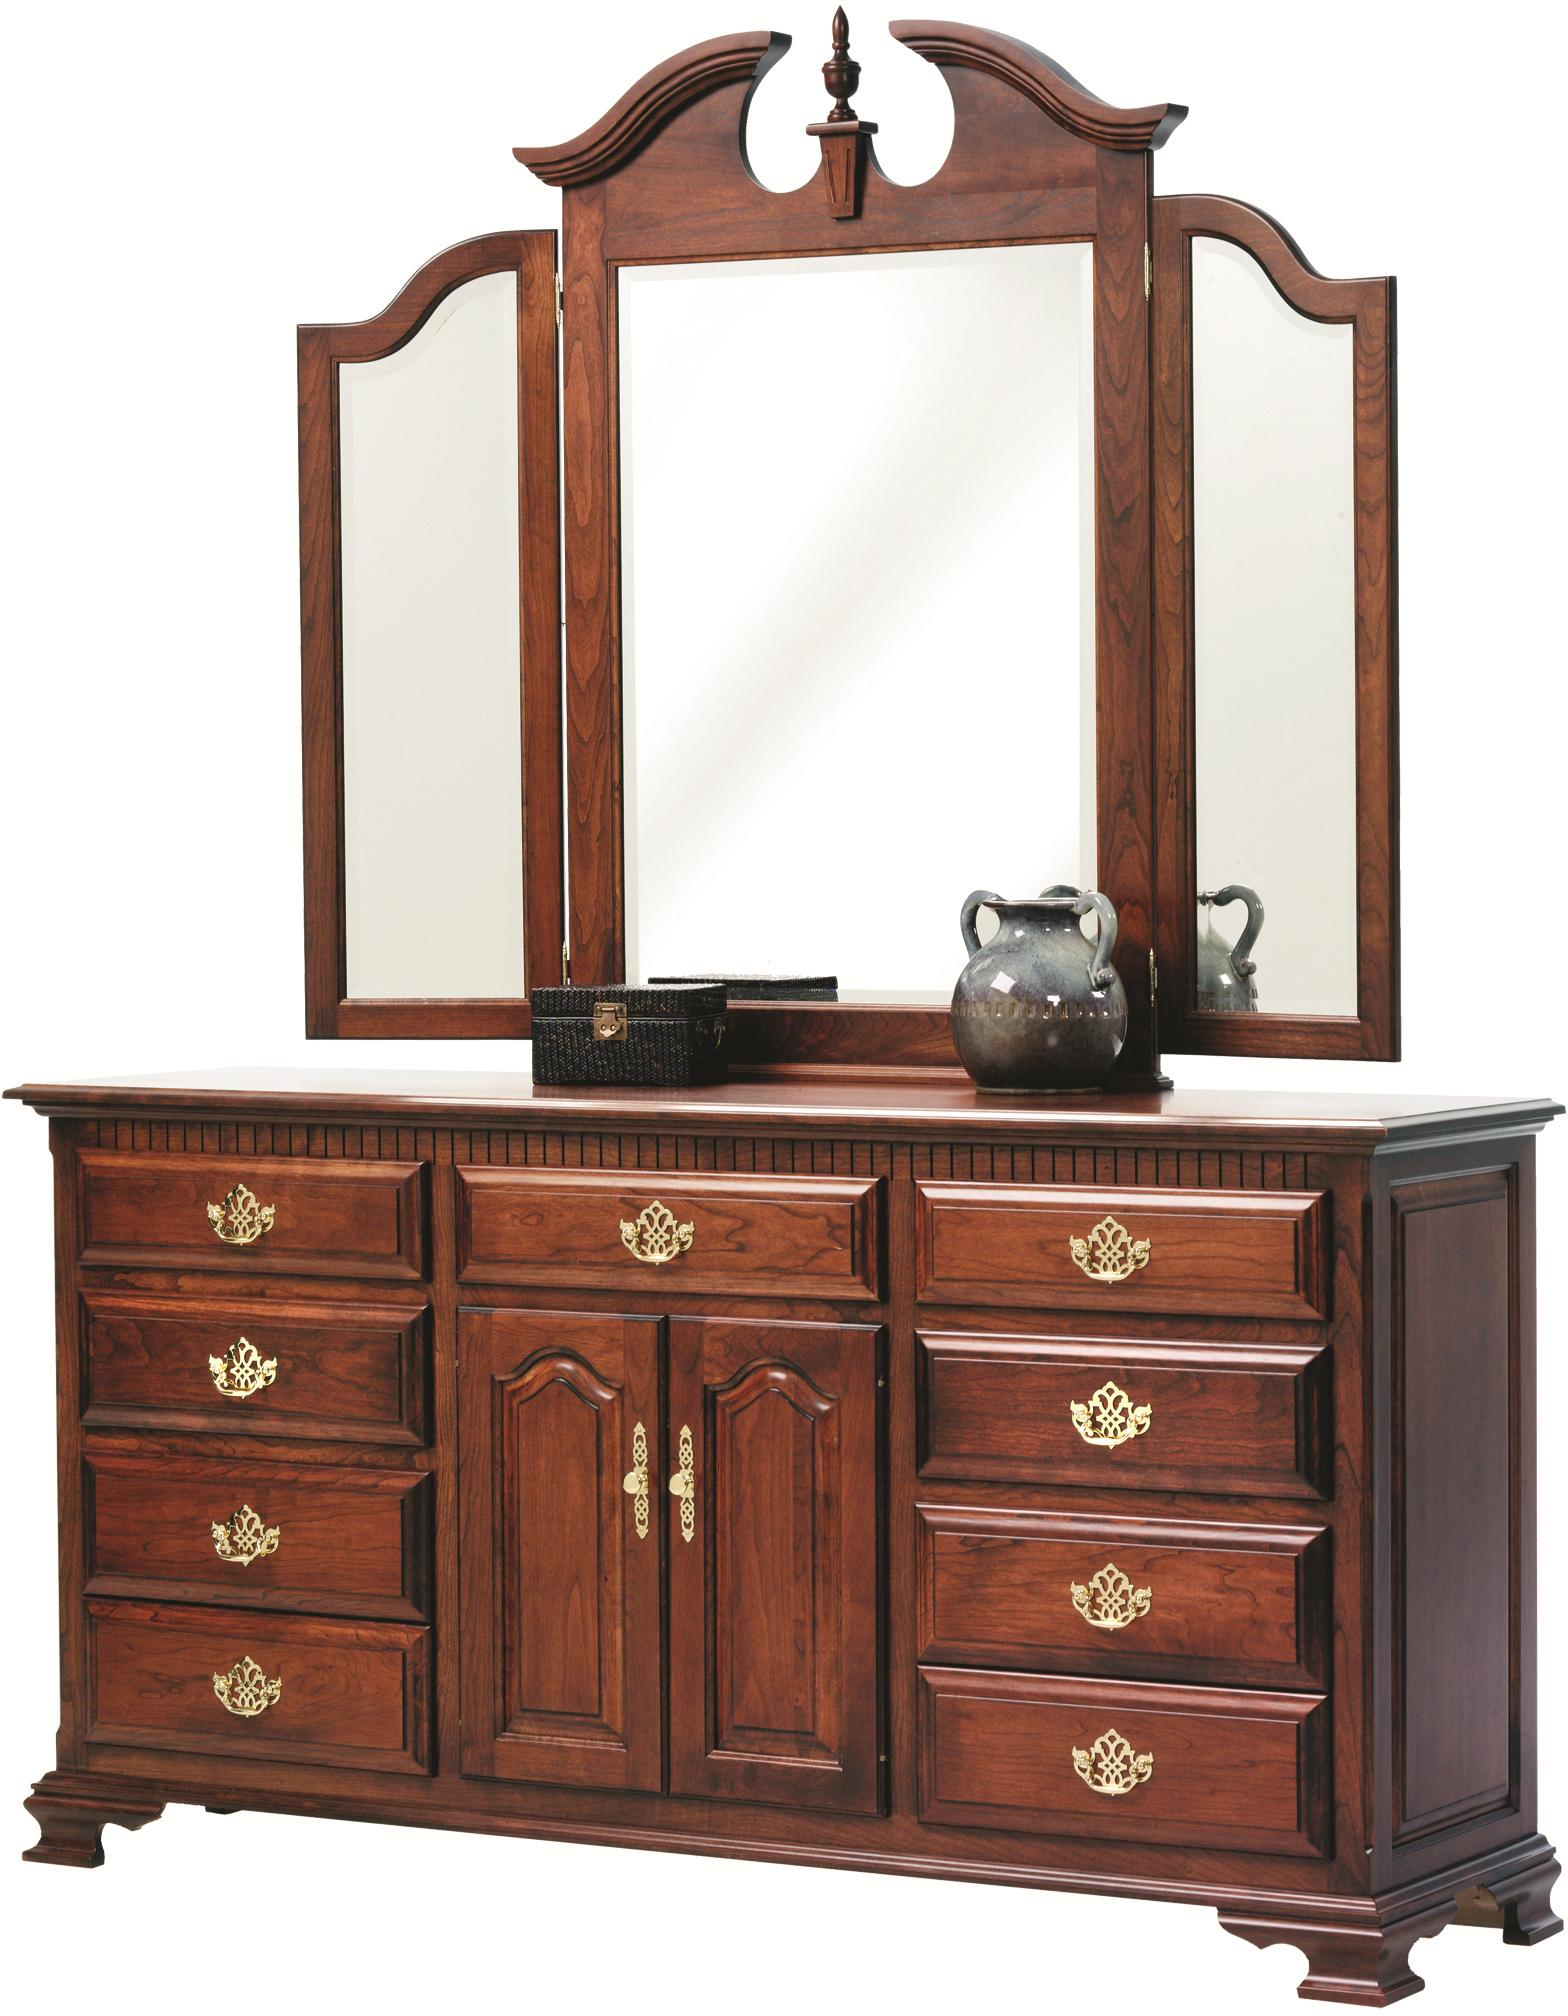 Victorias Tradition Tri Mirror and Dresser Set by Millcraft at Saugerties Furniture Mart